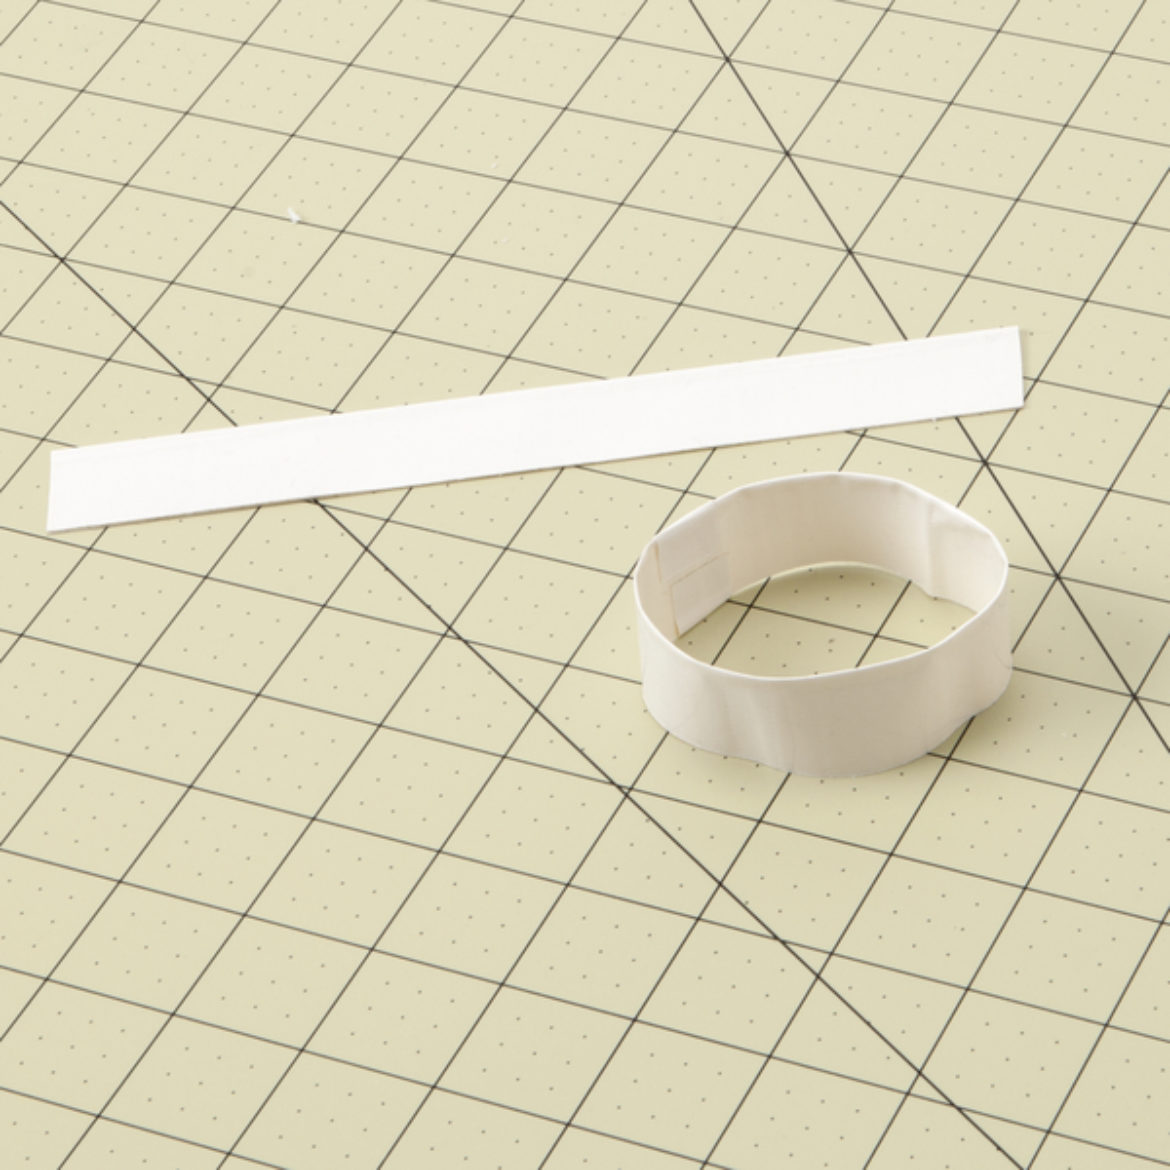 double sided strip made by folding a strip of Duck Tape lengthwise. Strip then formed into a loop and taped to form a loop